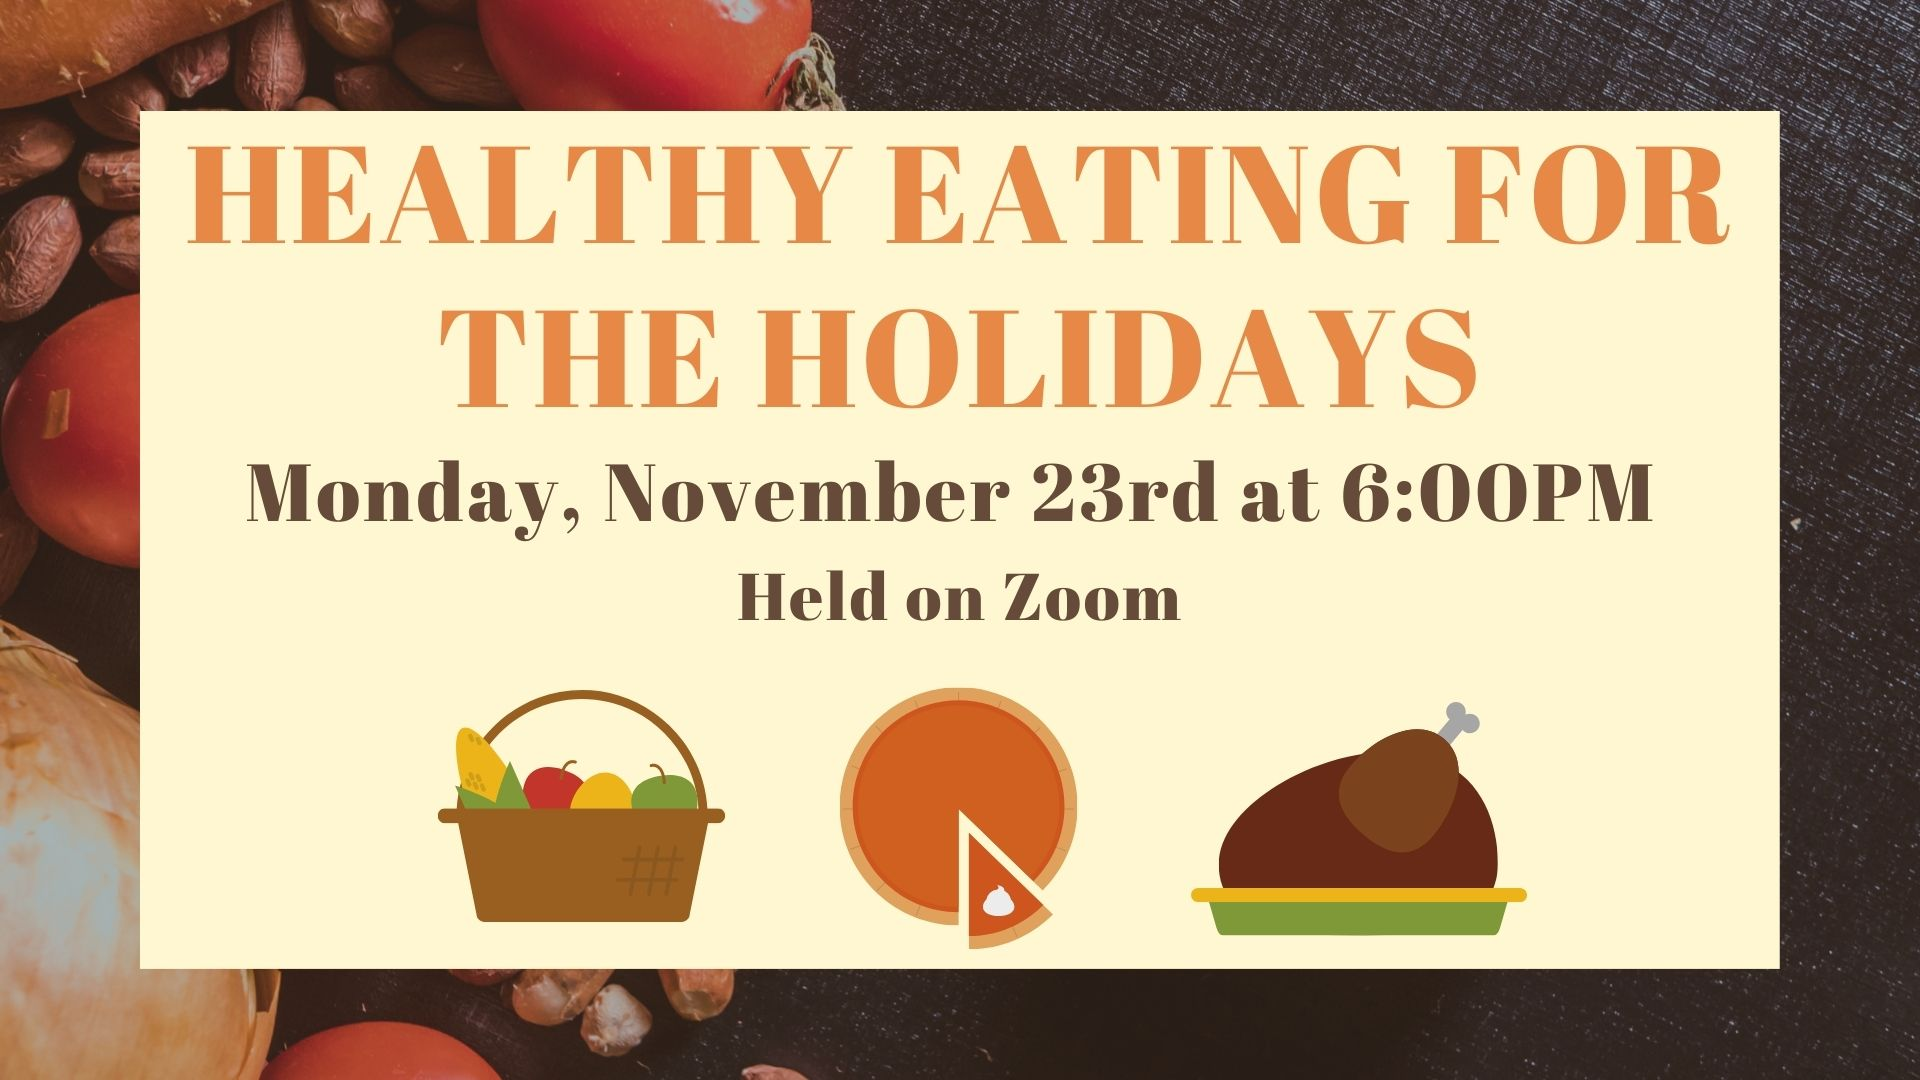 Healthy Eating for the Holidays program